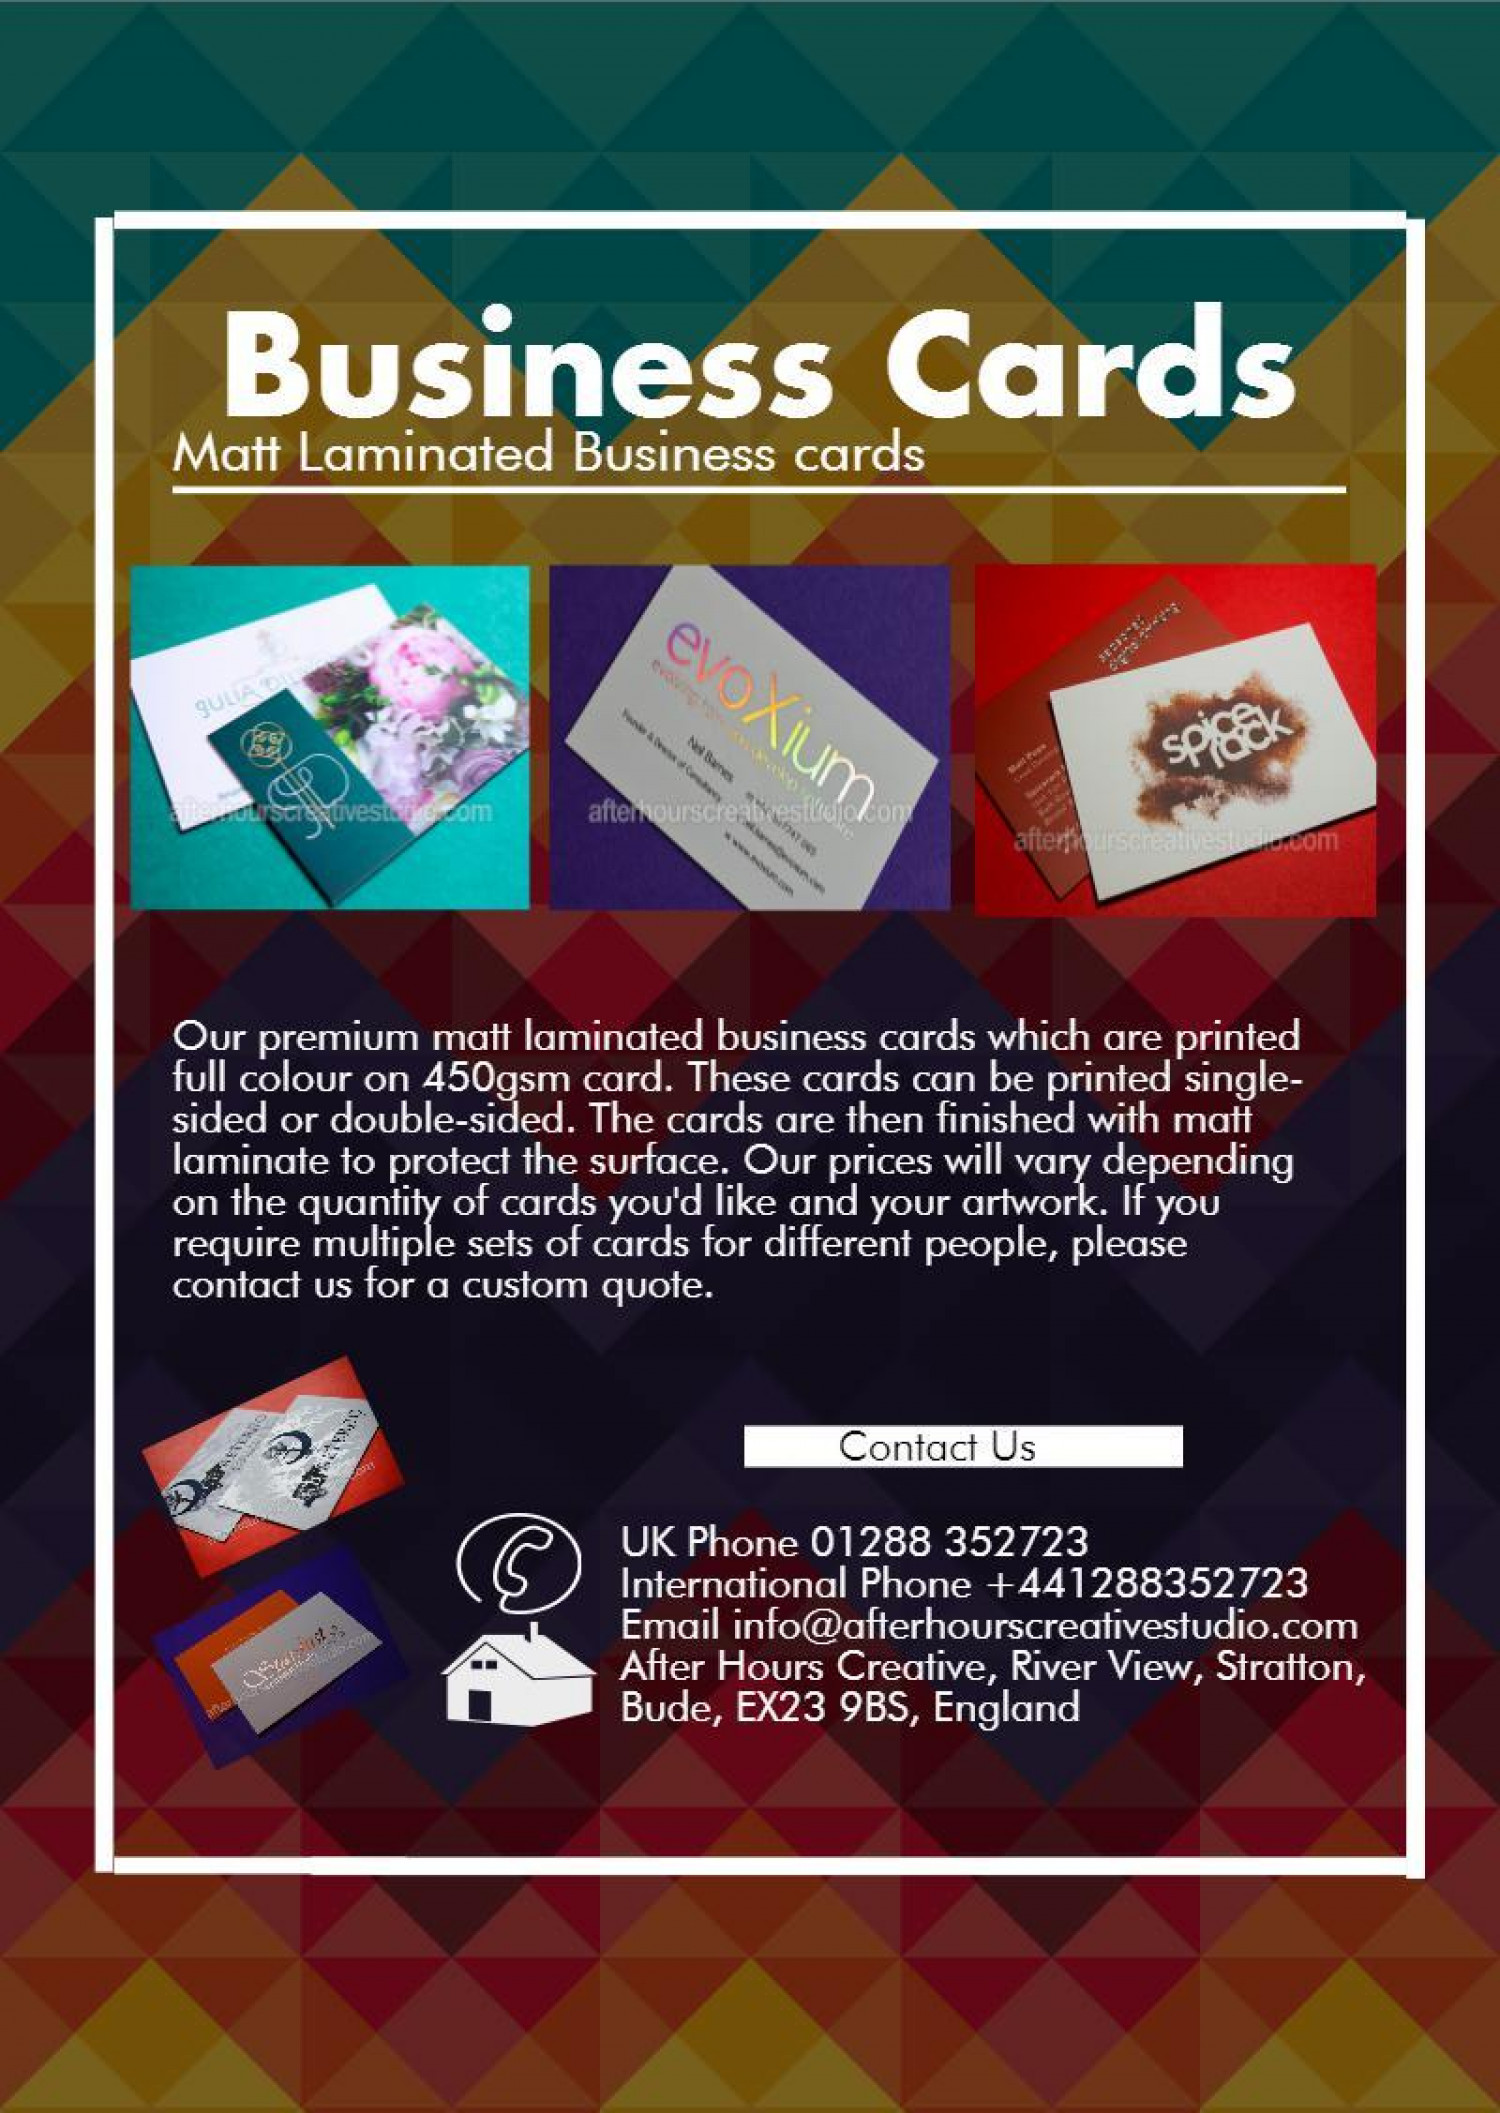 Matt Laminated Business Cards Made Easy  from only  £20.00 Infographic